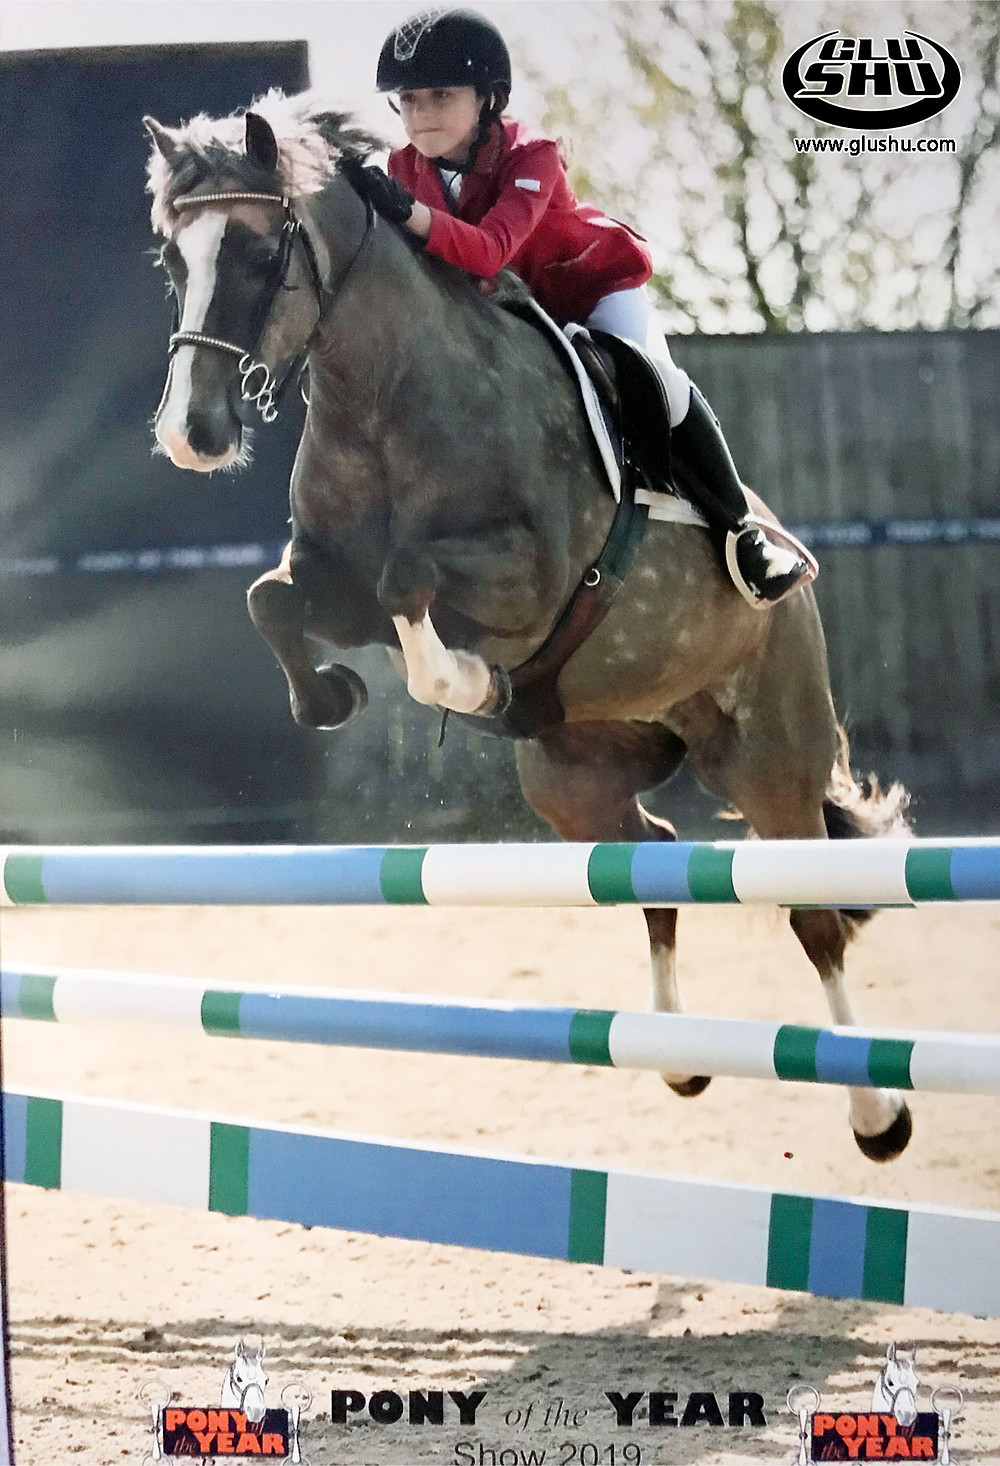 Sweetie show jumping in Glushu glue on horse shoes